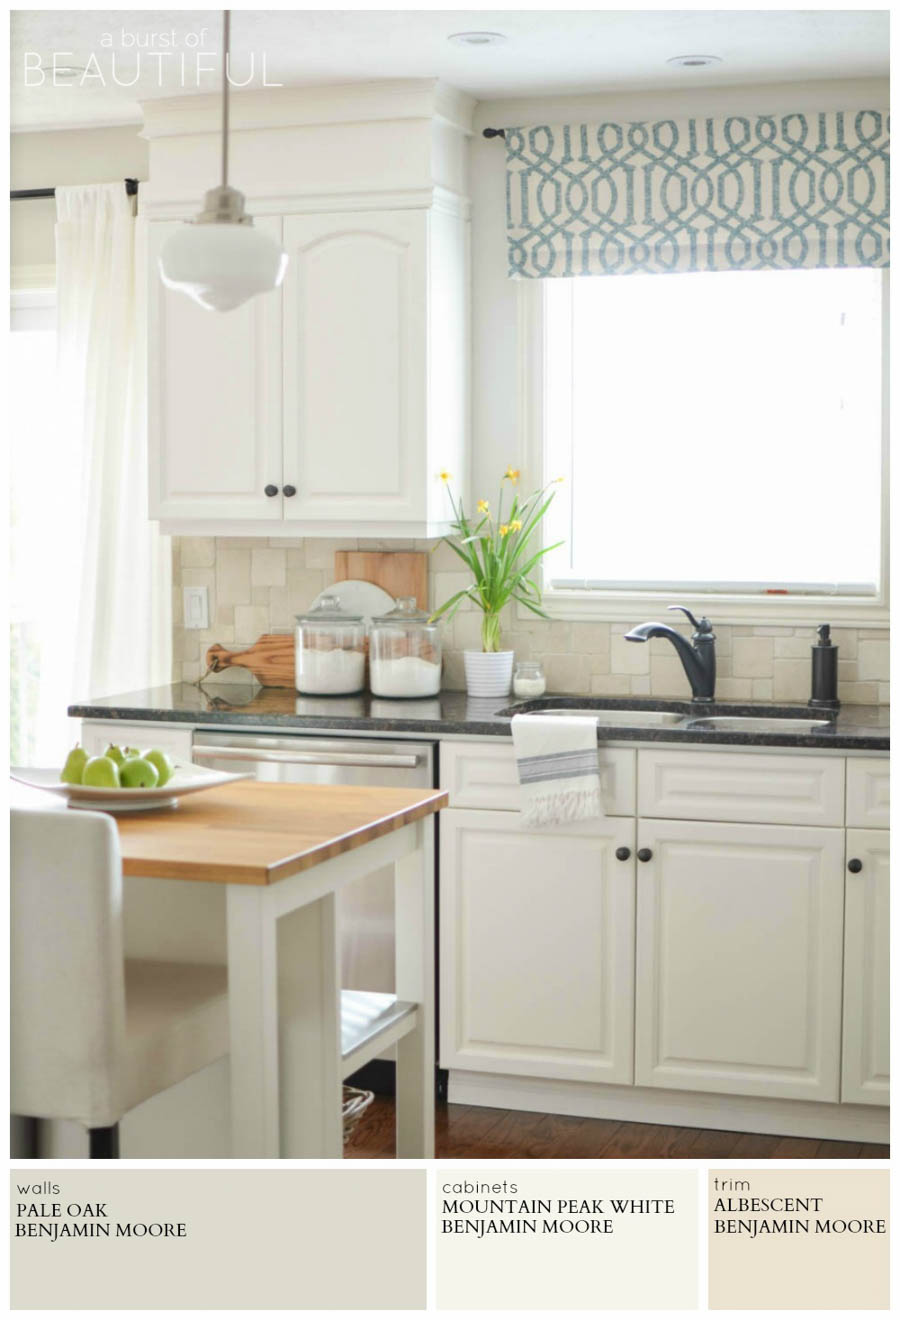 benjamin moore kitchen cabinet paint colors kitchen ideas modern farmhouse neutral paint colors a burst of beautiful